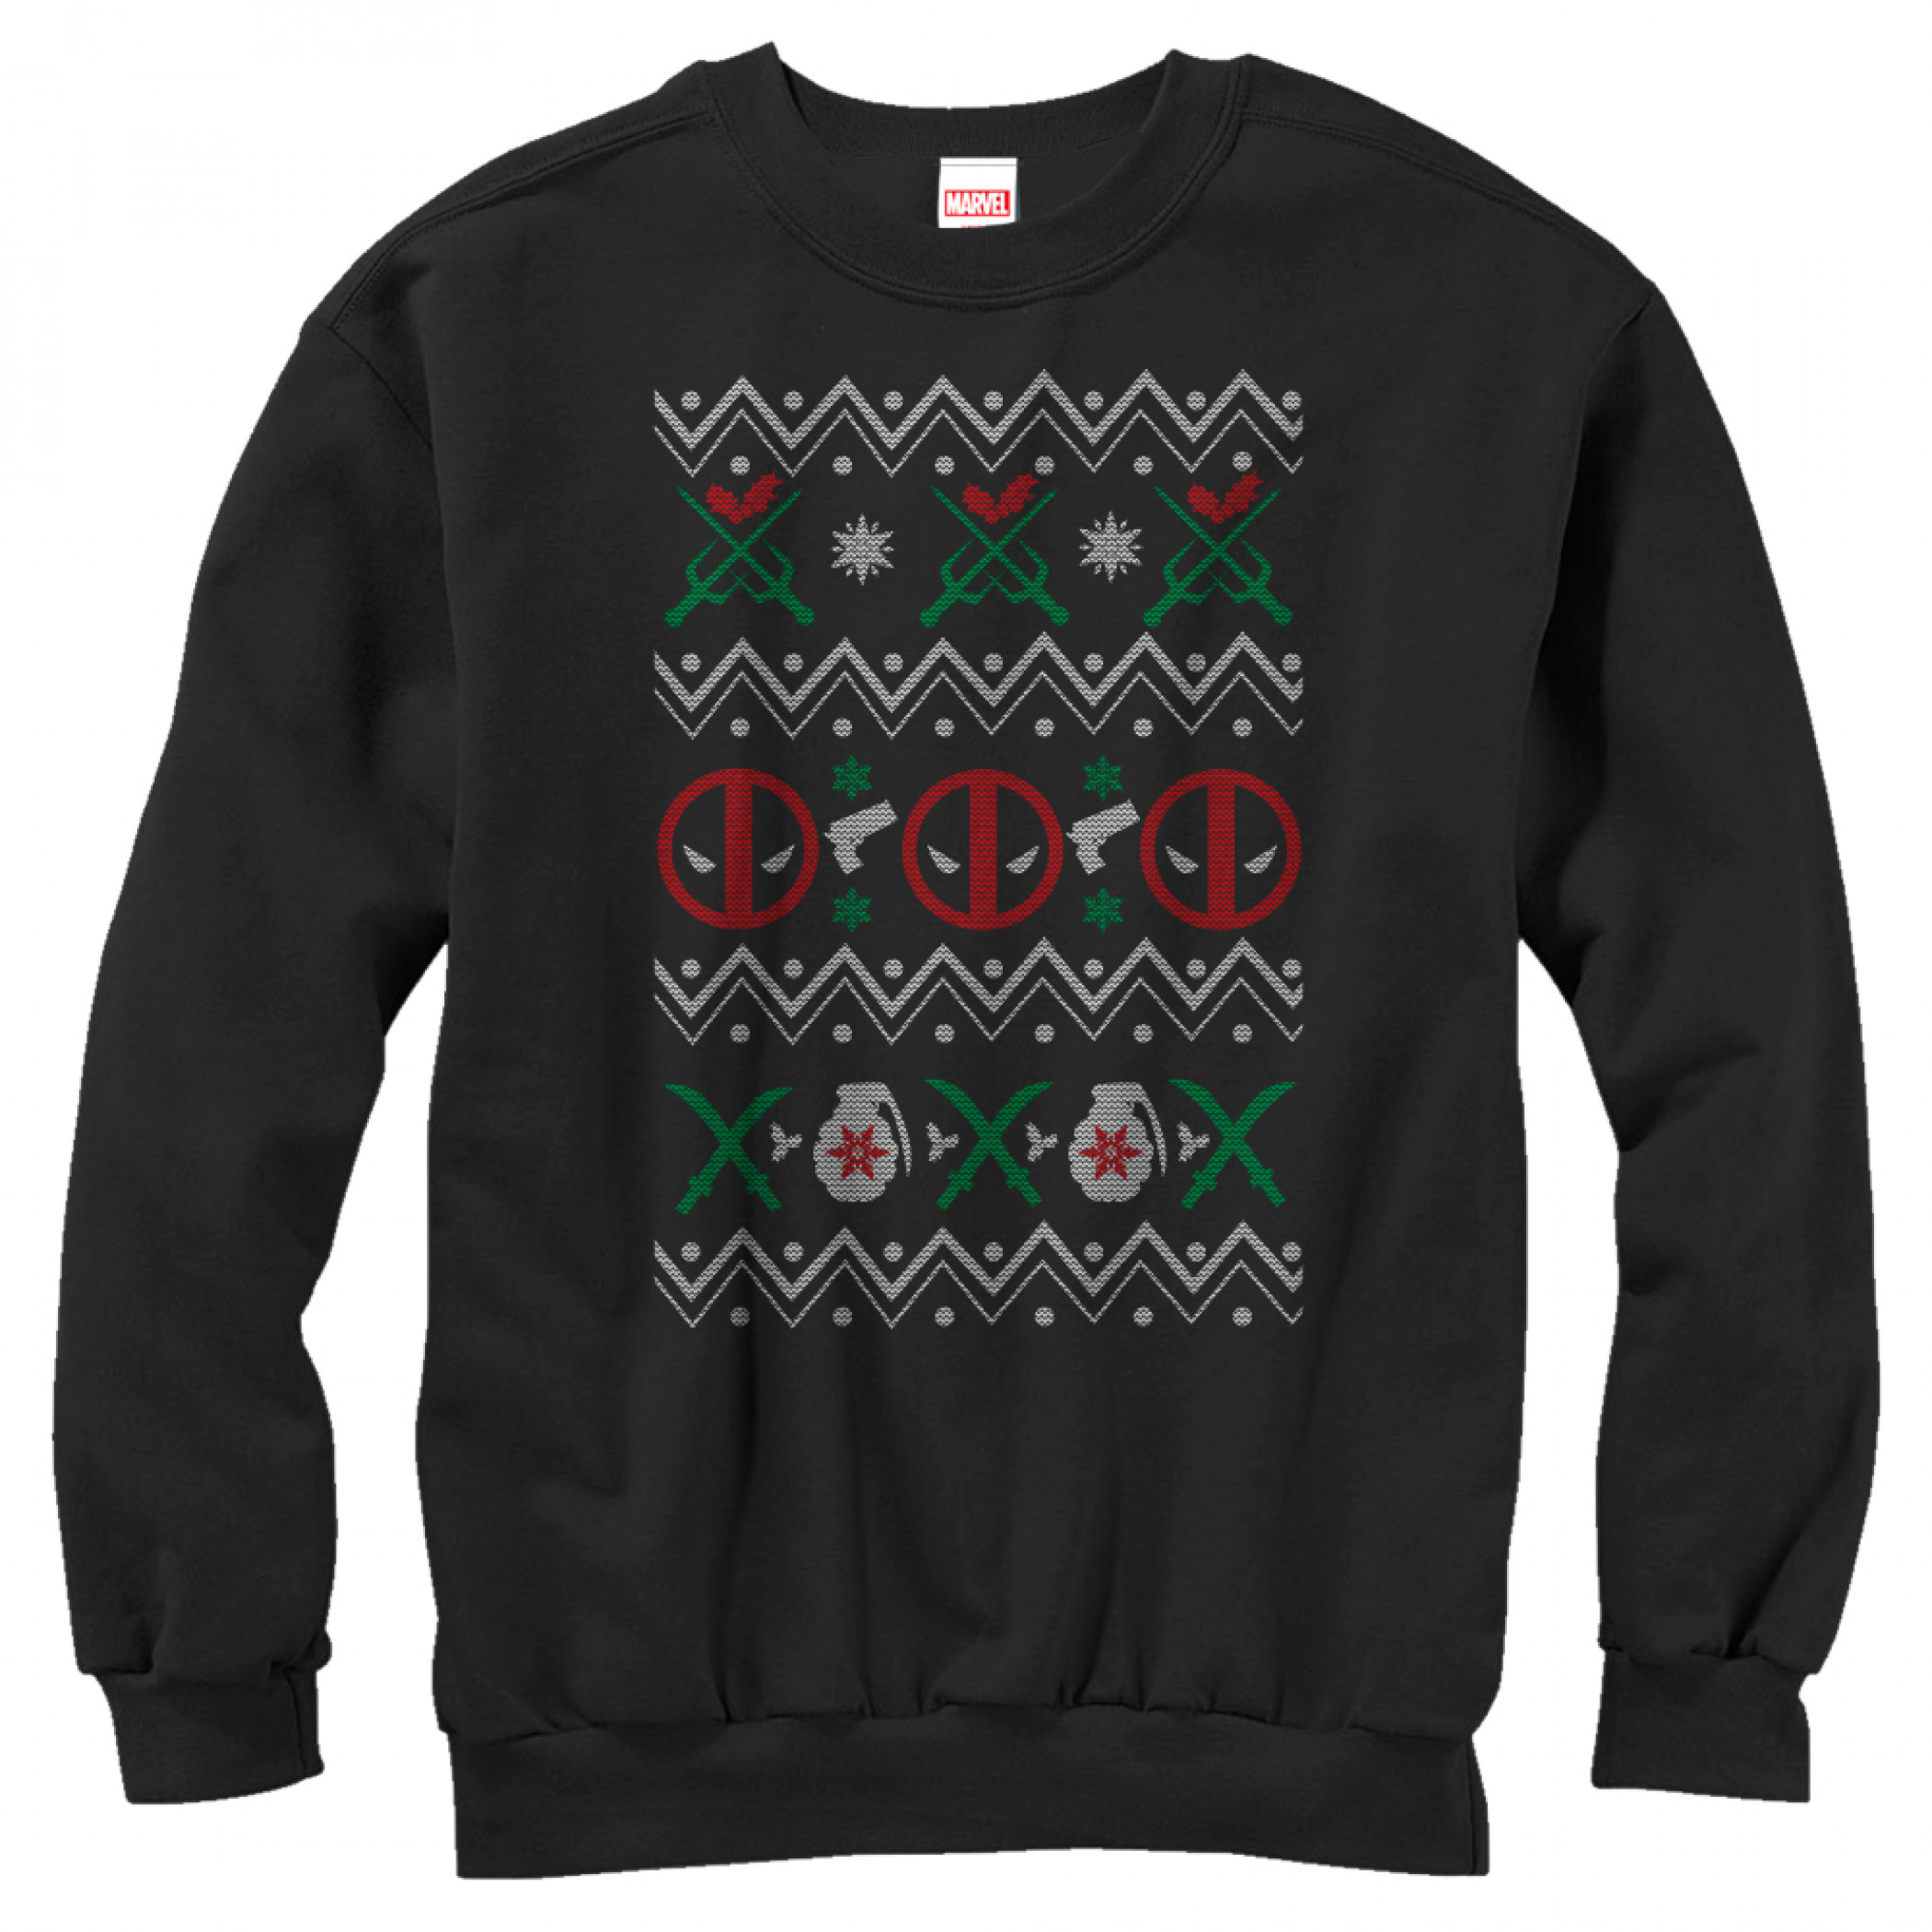 Deadpool Ugly Christmas Sweater Design Sweatshirt